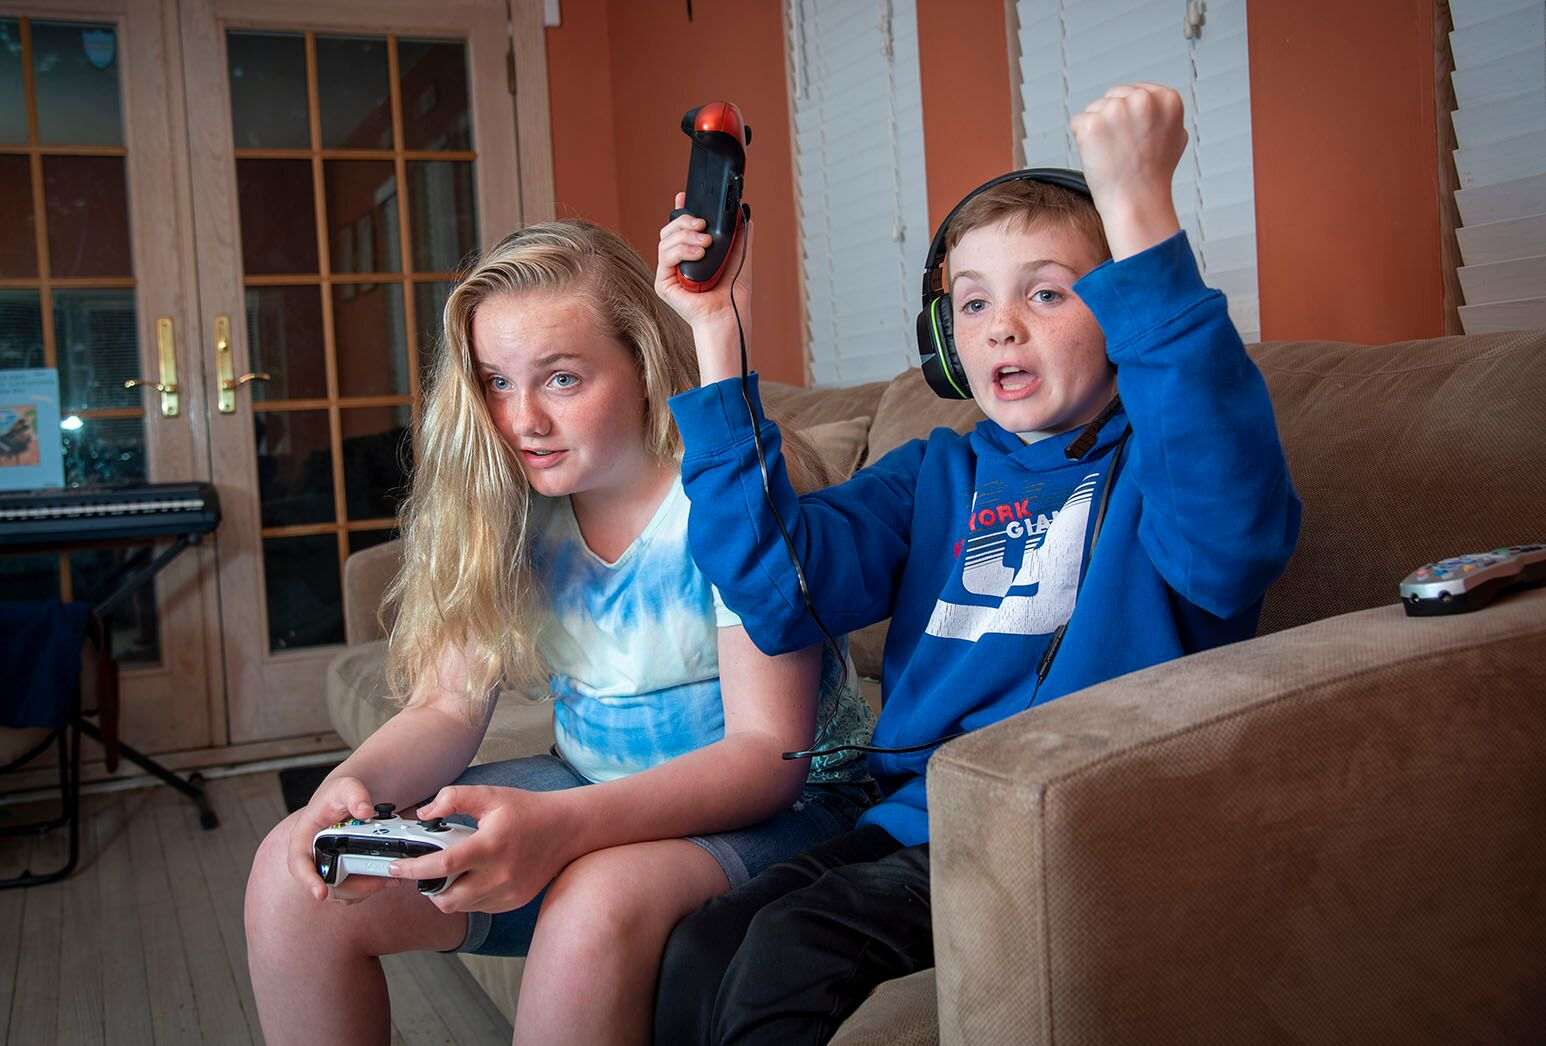 Young girl with long blond hair and boy with dark hair and headphones playing a video game on couch.